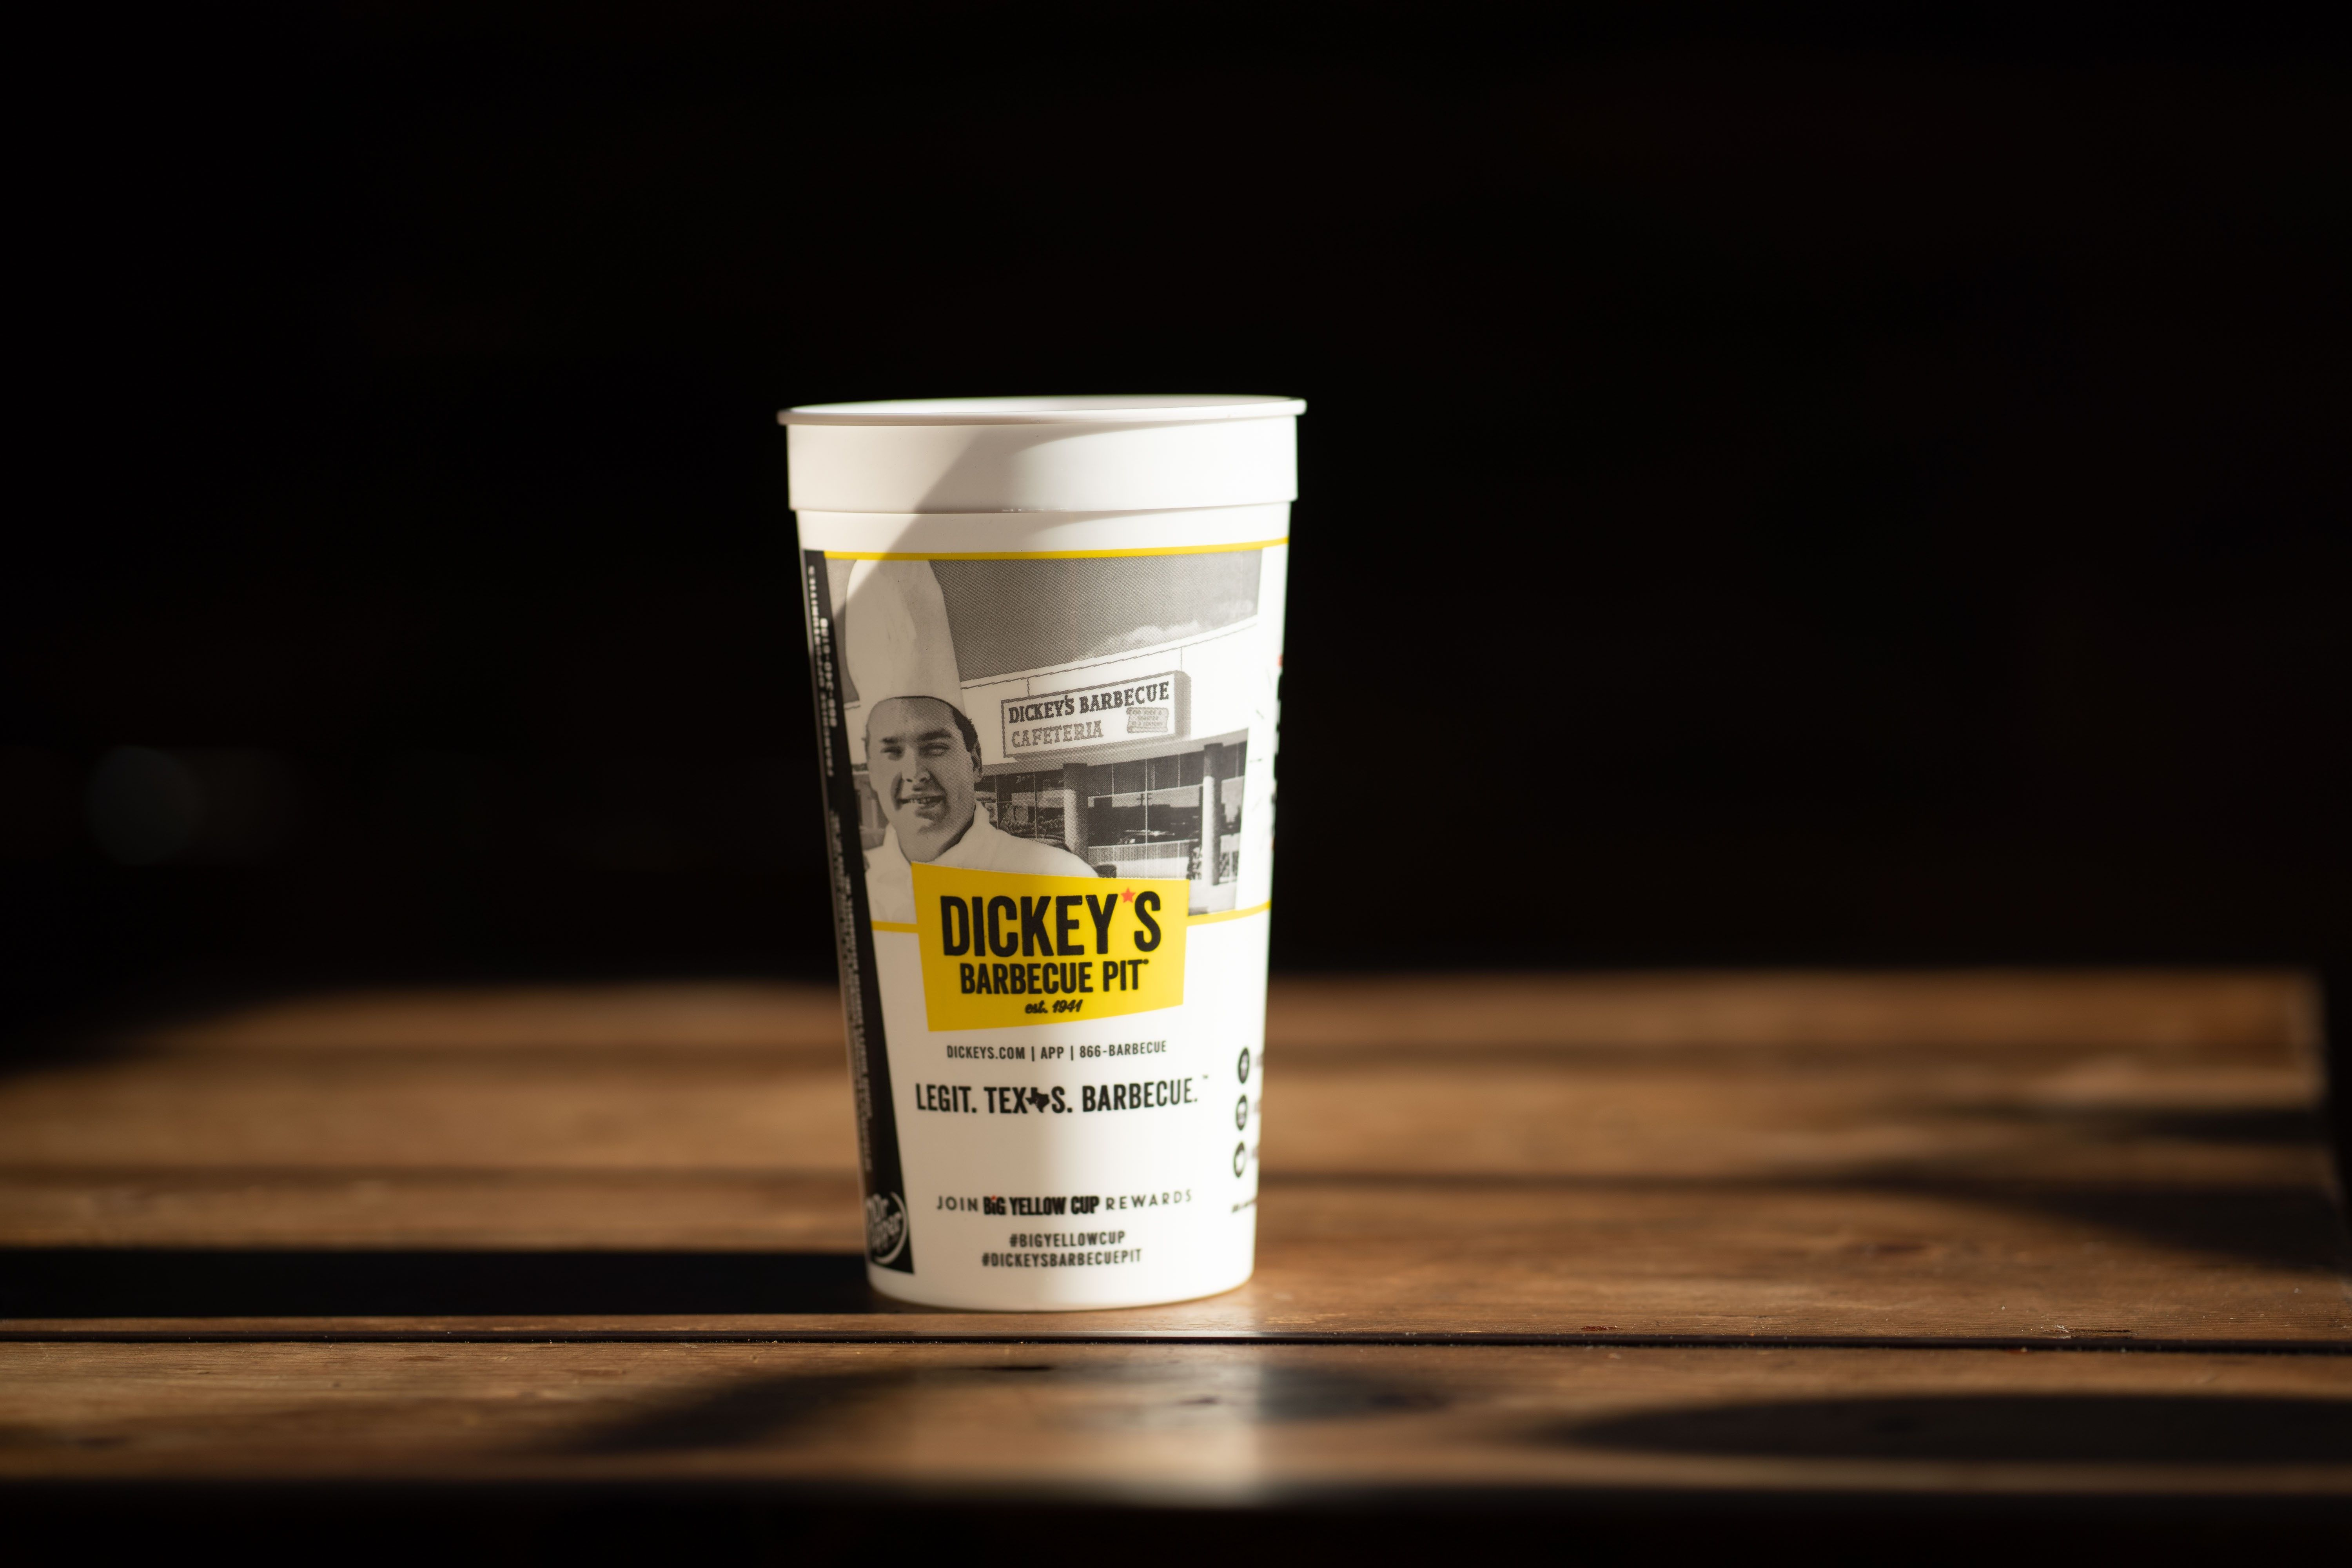 Dickey's Black and White Tribute Cup